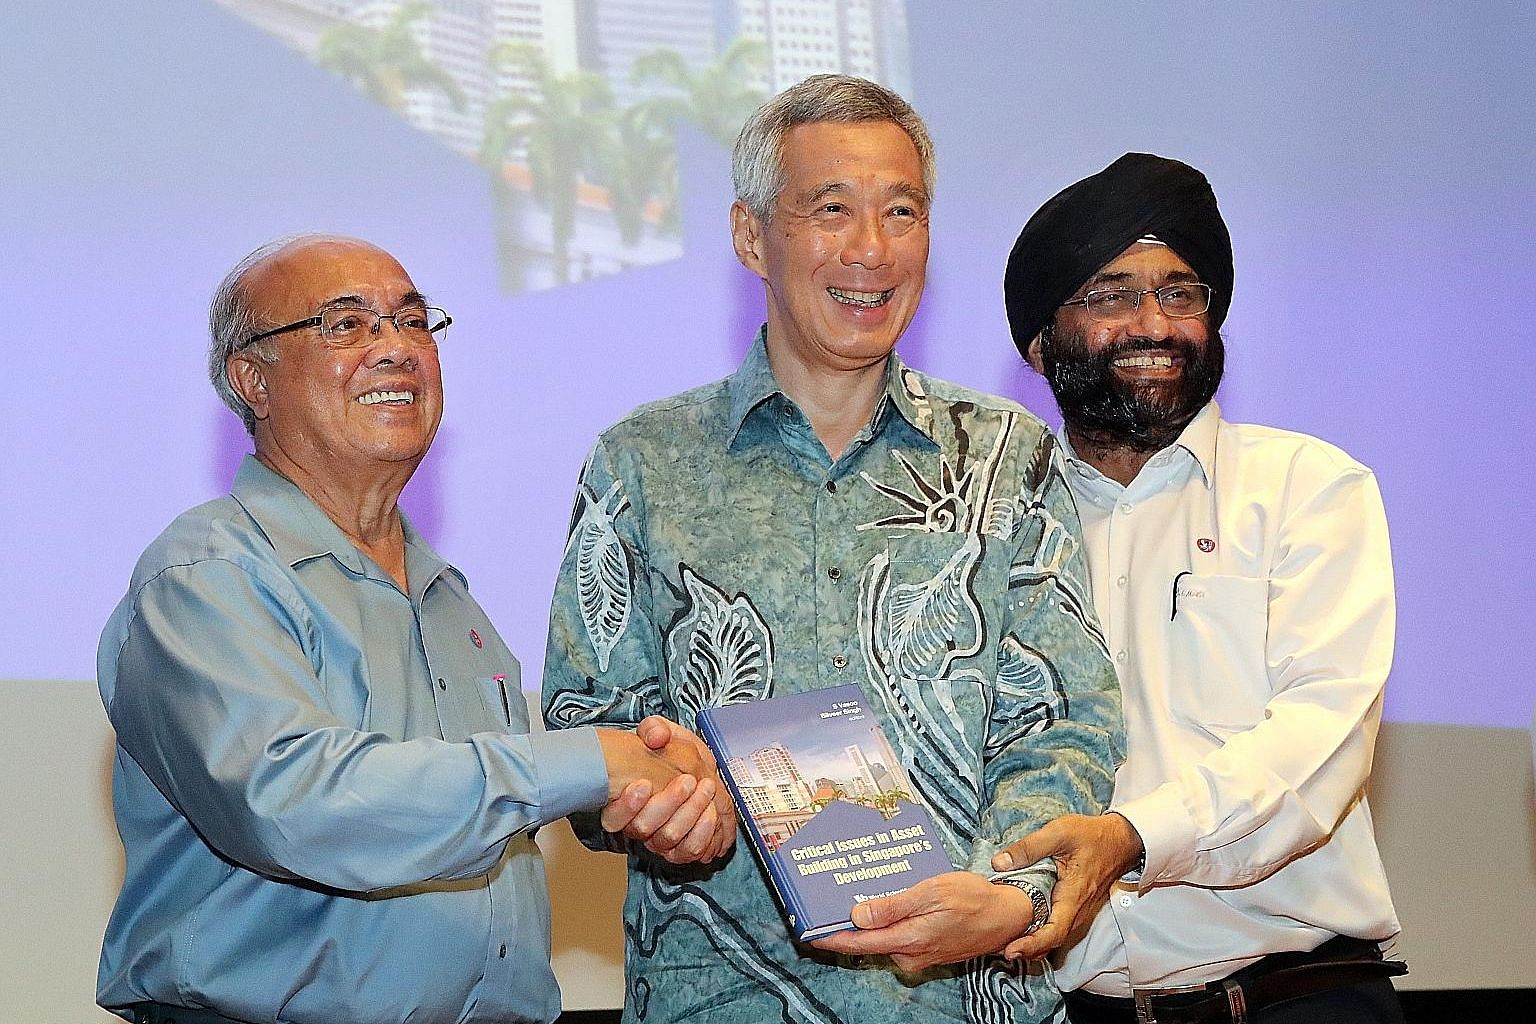 Prime Minister Lee Hsien Loong at the launch yesterday of a book edited by Associate Professor S. Vasoo (left) and Associate Professor Bilveer Singh. The book examines Singapore's asset-building policies through a series of essays, which look at trad